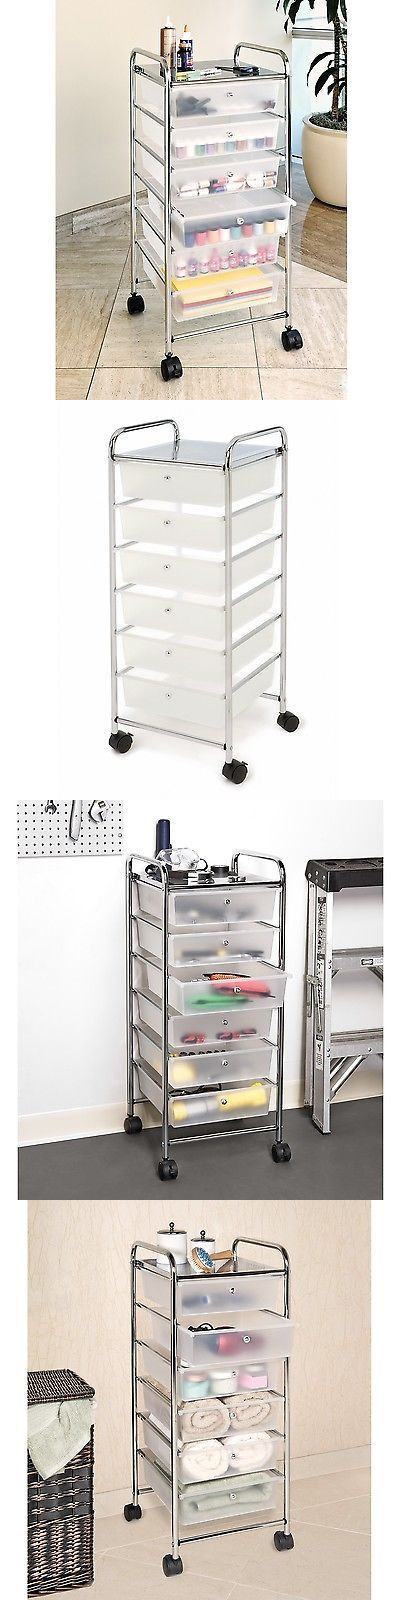 Salon and Spa Supplies: Barber Shop Equipment Supplies Storage Accessories Stuff Cart Trolley Salon Best -> BUY IT NOW ONLY: $59.95 on eBay!